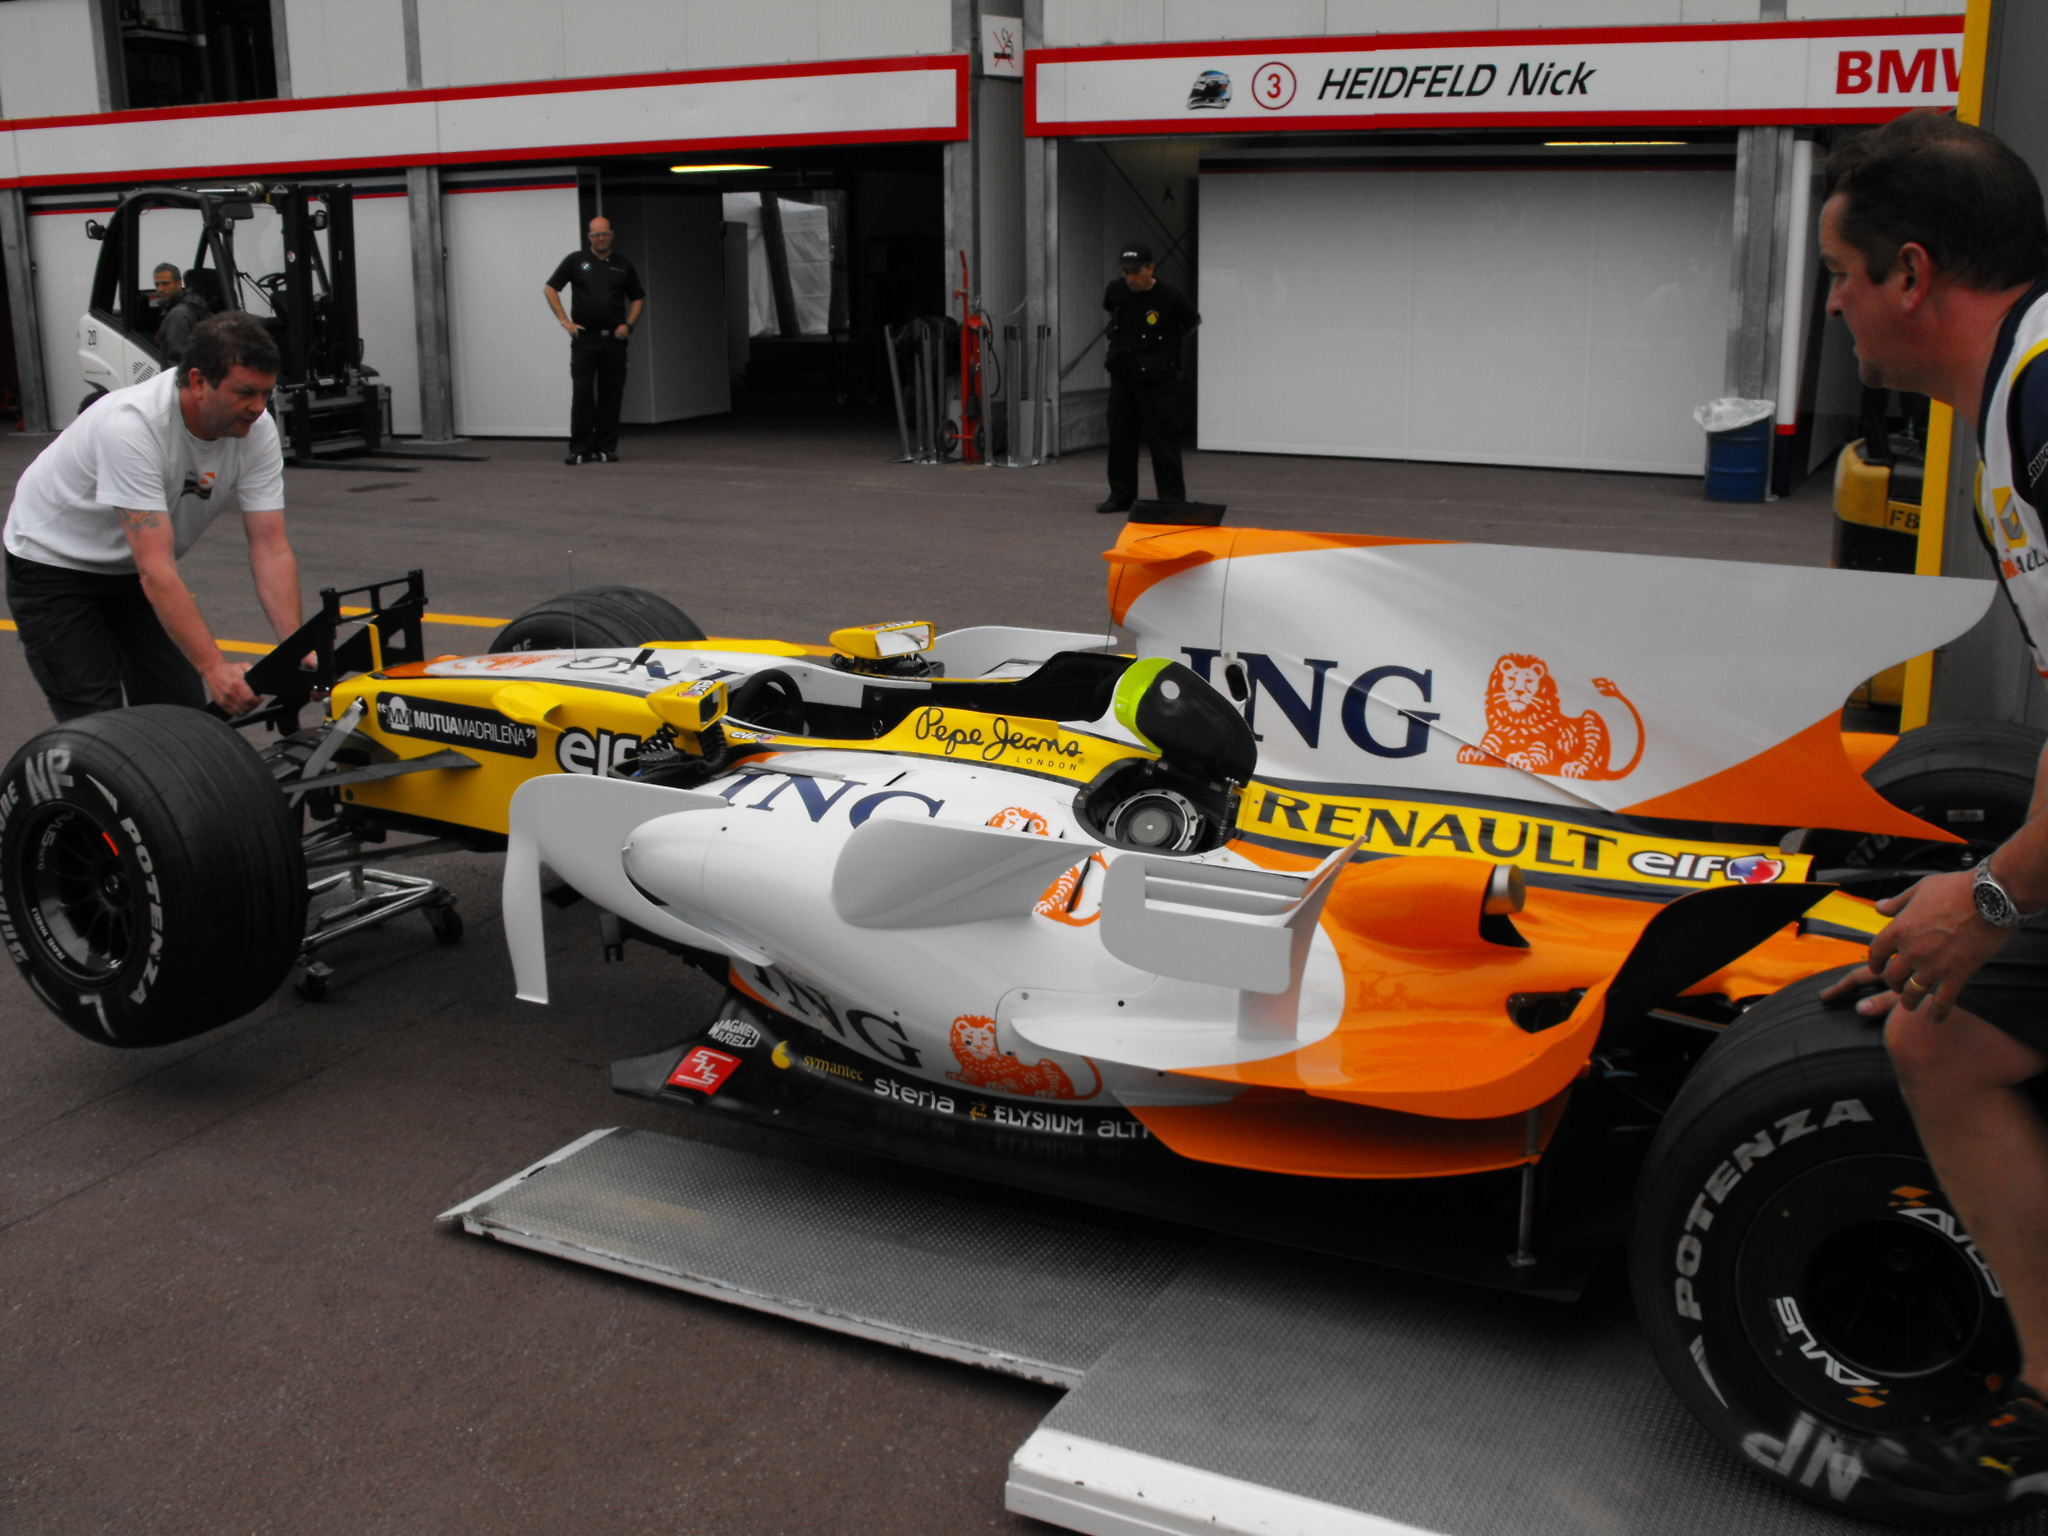 Renault r28 photo - 4